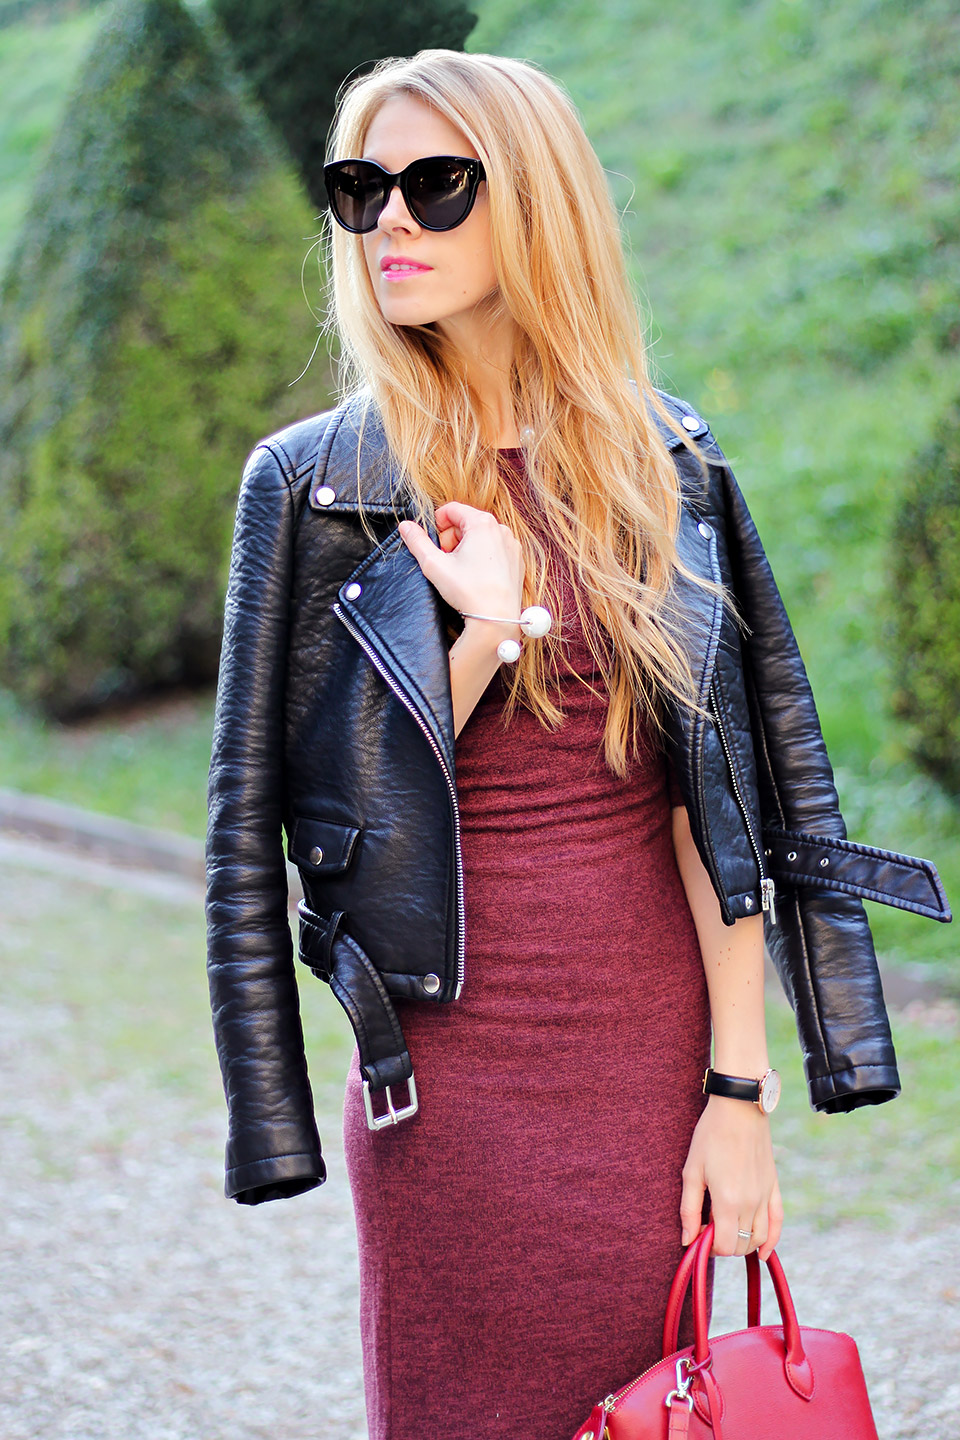 Collar black bodycon dress with jean jacket ever sneakers halifax